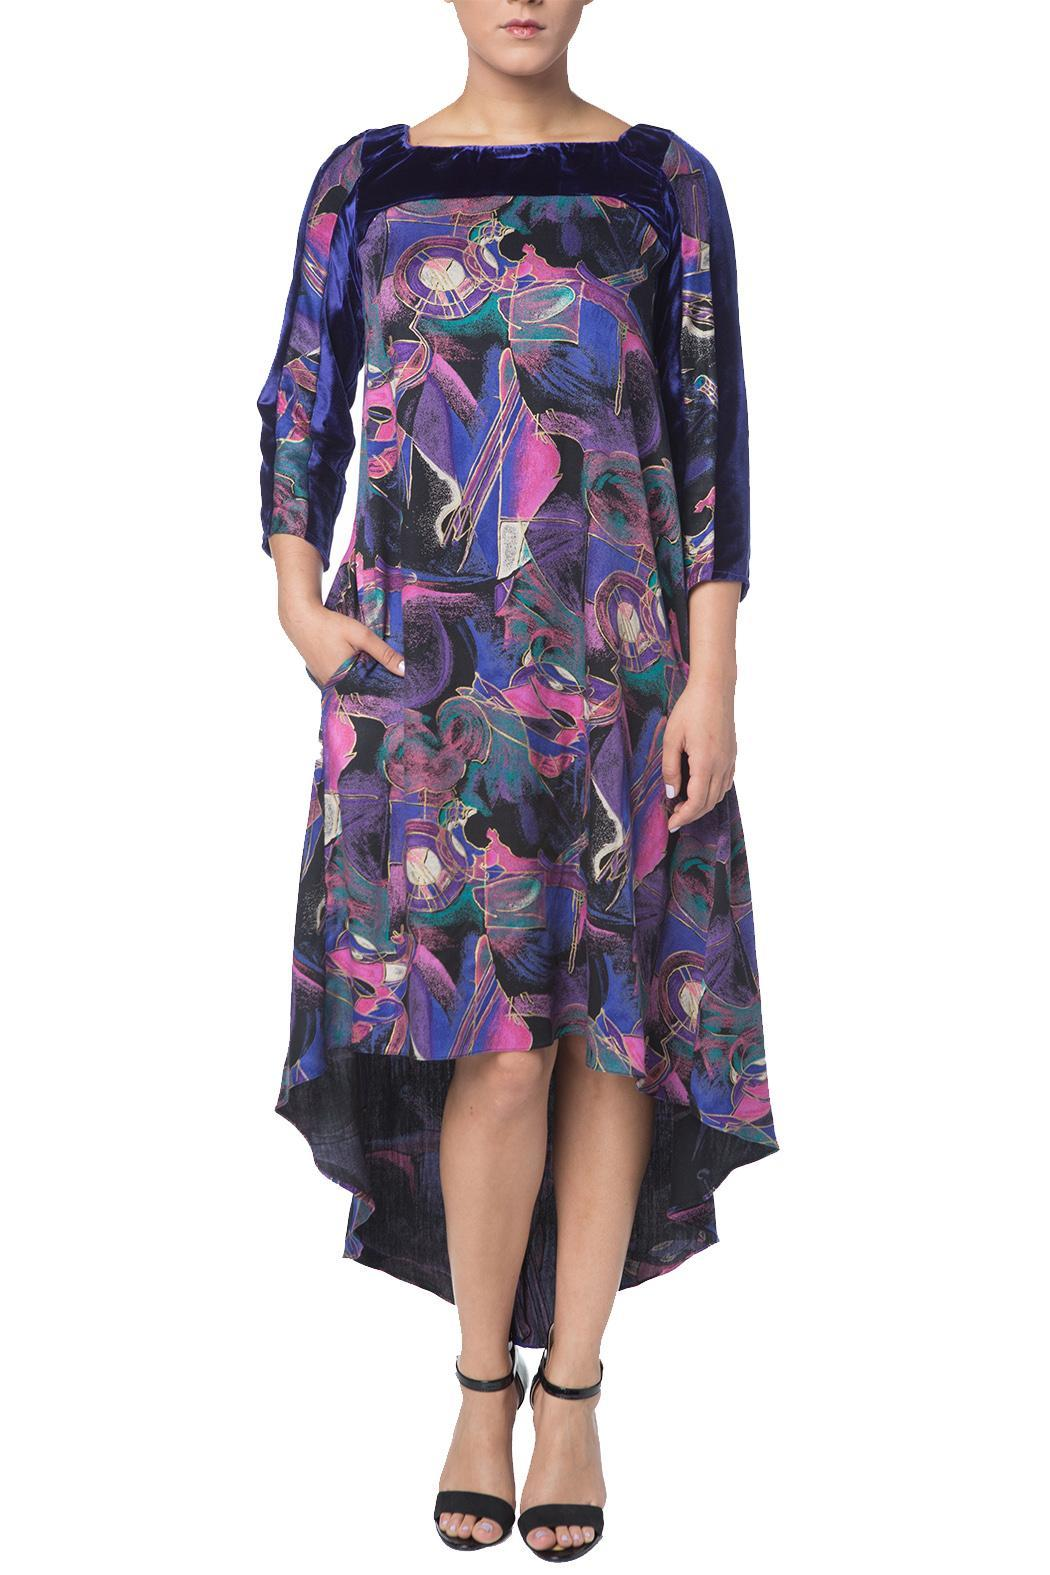 OHLENDORF atelier Rayon Print Dress - Main Image